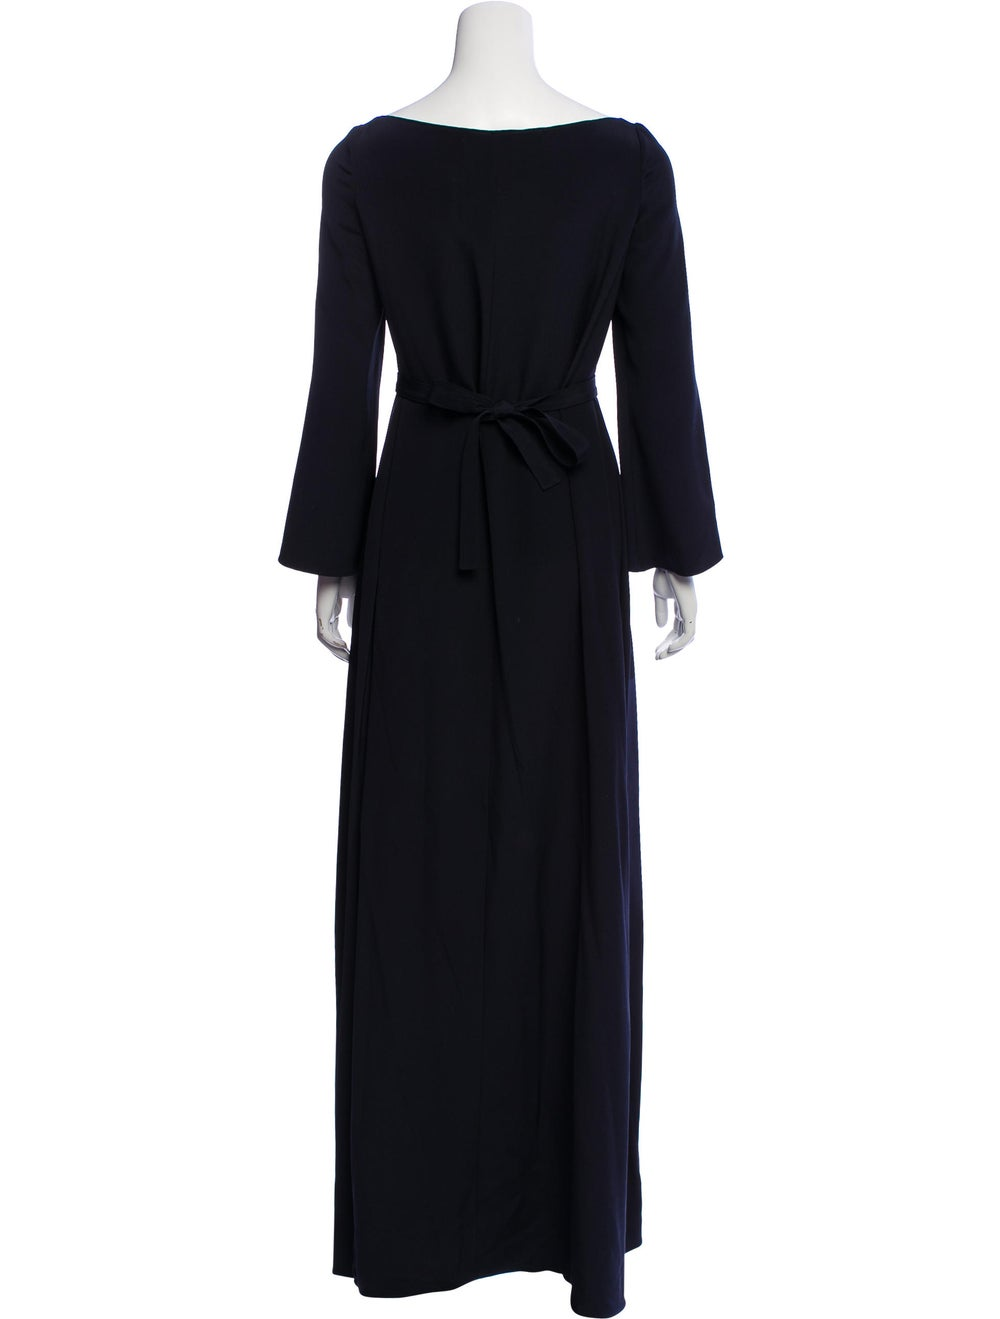 Oscar de la Renta Long Sleeve Maxi Dress Blue - image 3